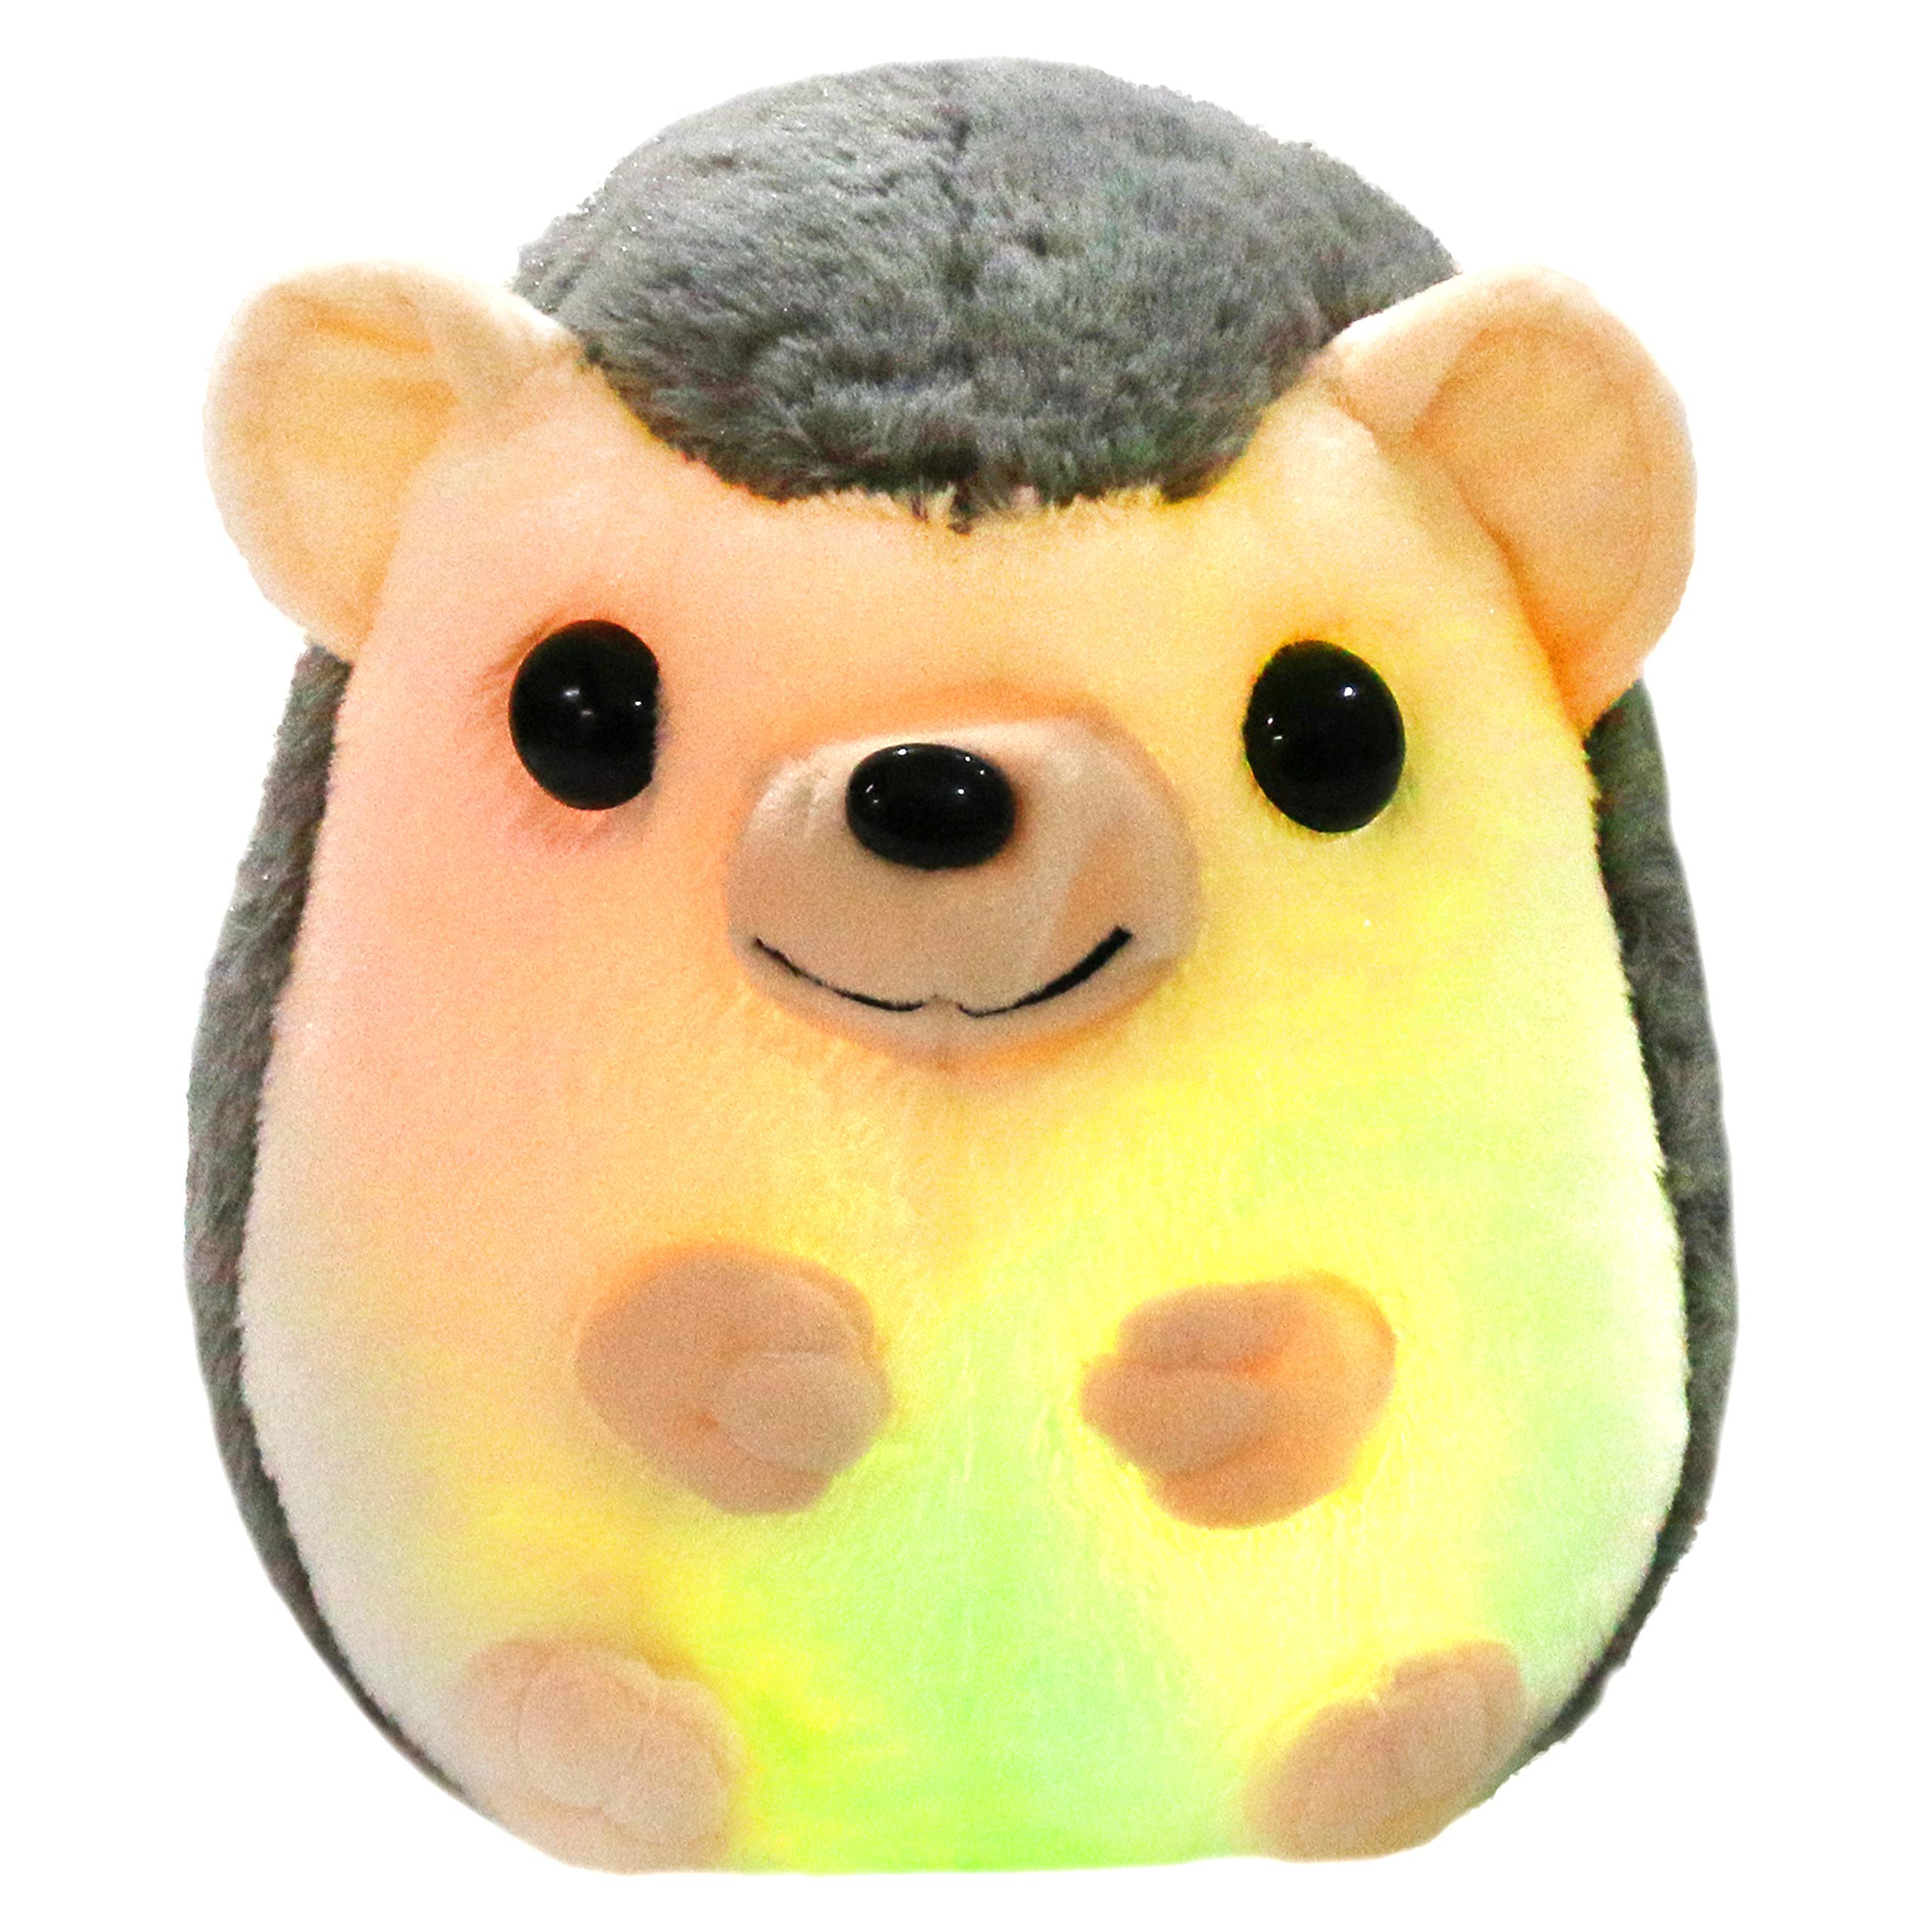 Bstaofy LED Hedgehog Stuffed Animal Glow Small Plush Toy Light up Nightlight Bedtime Gift for Toddlers Kids on Birthday Christmas, 10''